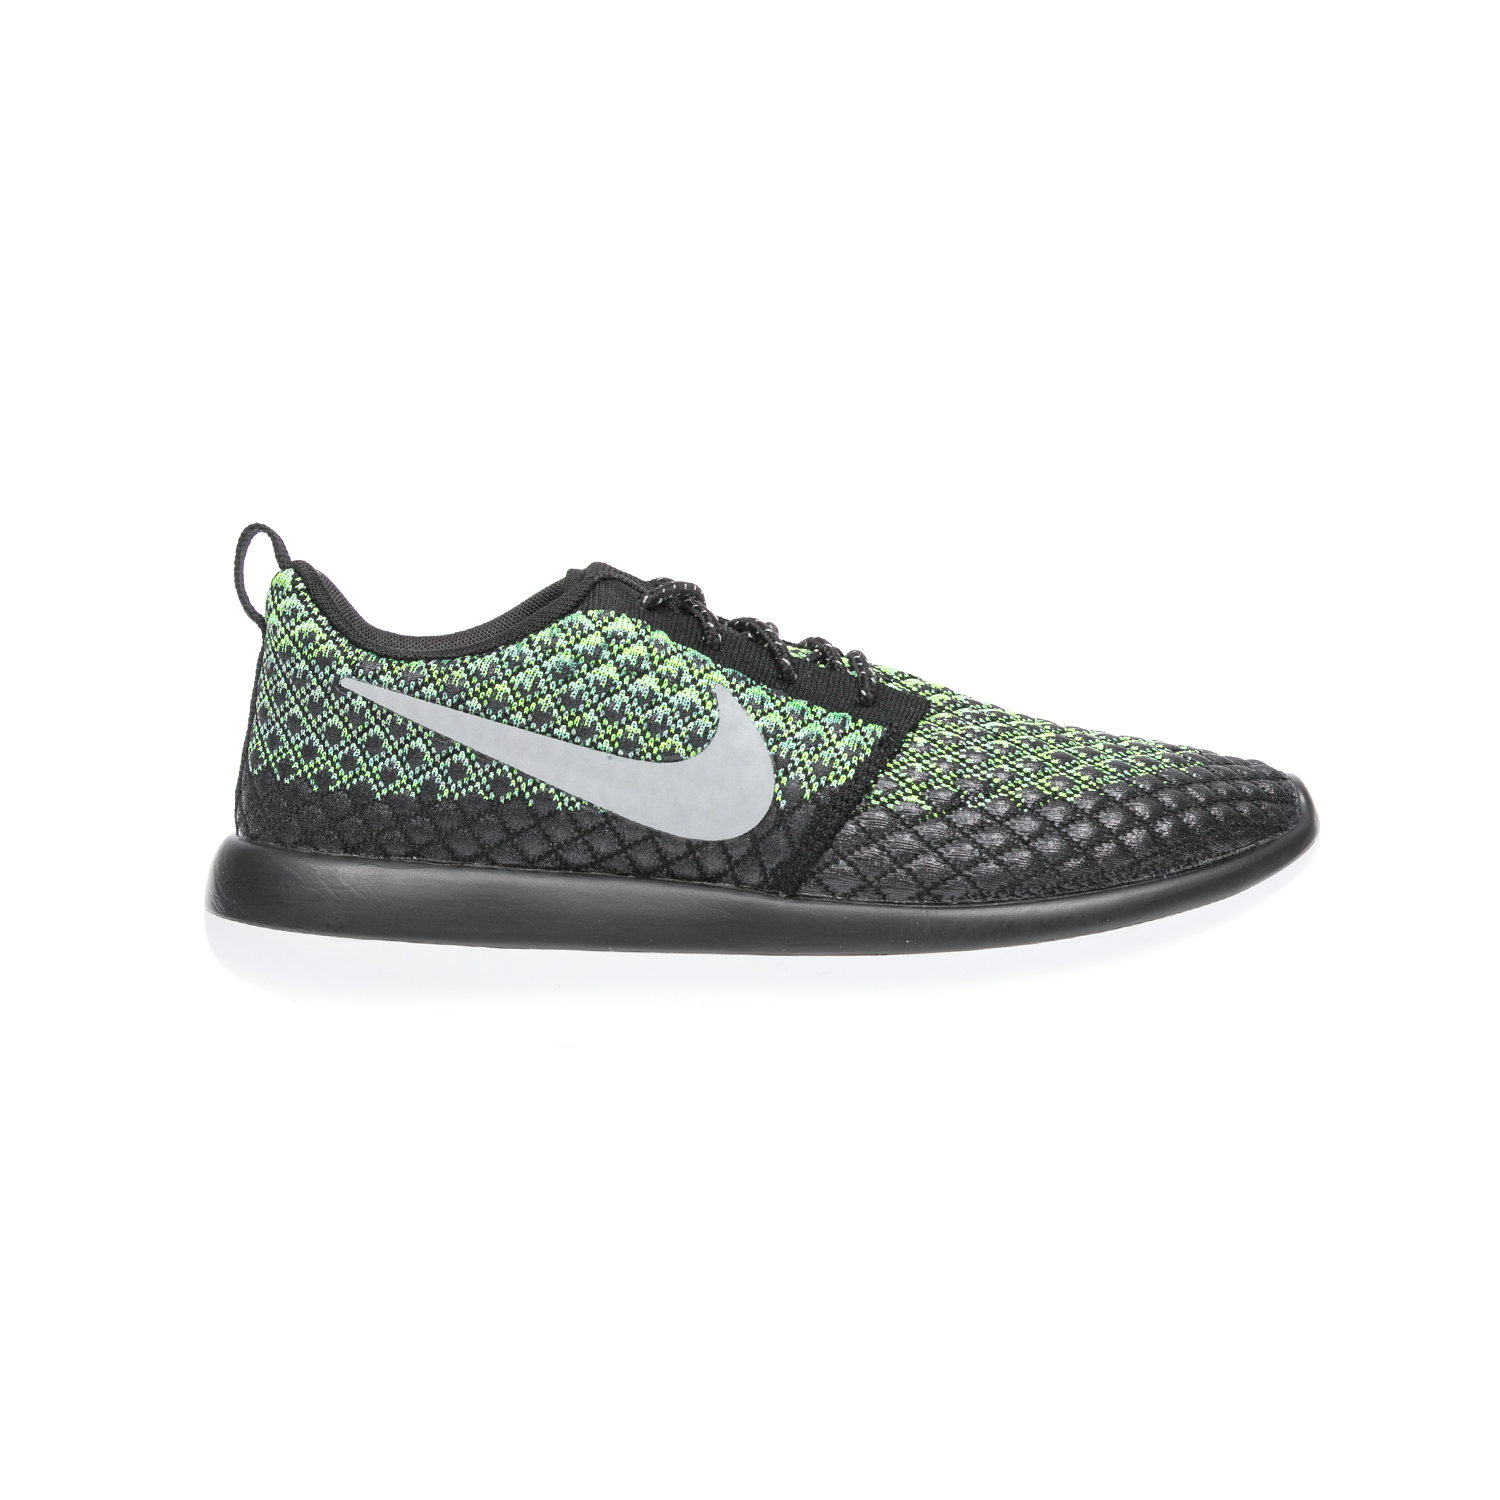 NIKE – Αντρικά παπούτσια NIKE ROSHE TWO FLYKNIT 365 πράσινα-μαύρα